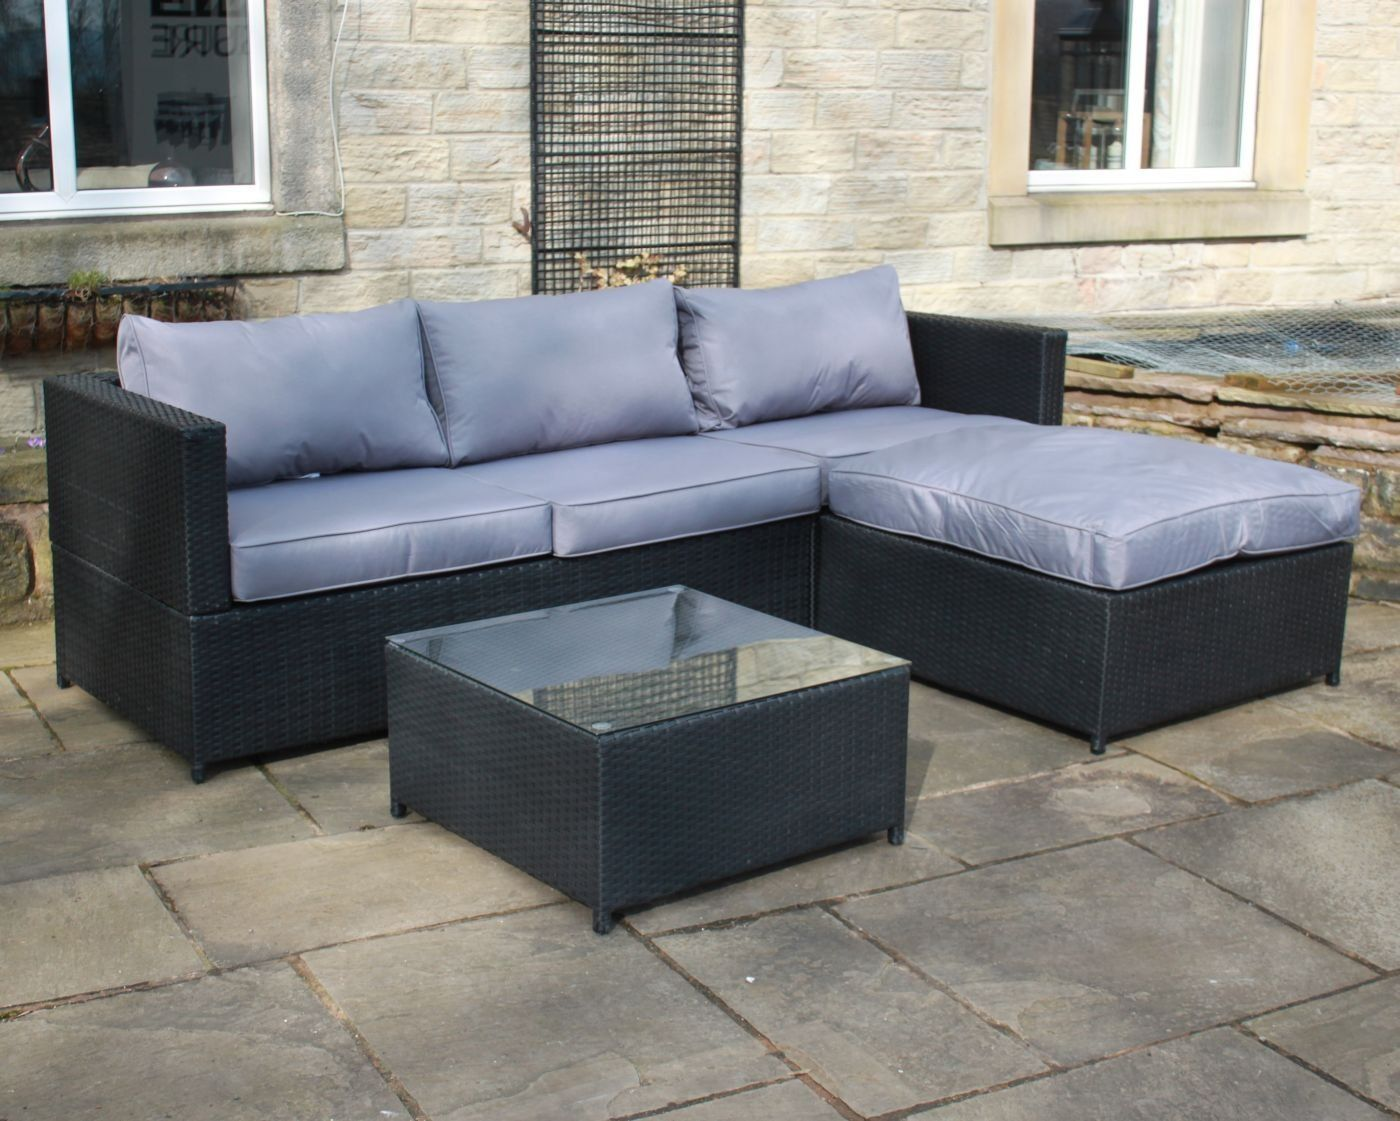 Garden Rattan Sofa Uk Black Rattan 4 Seat Corner Sofa Set Garden Patio Furniture 195